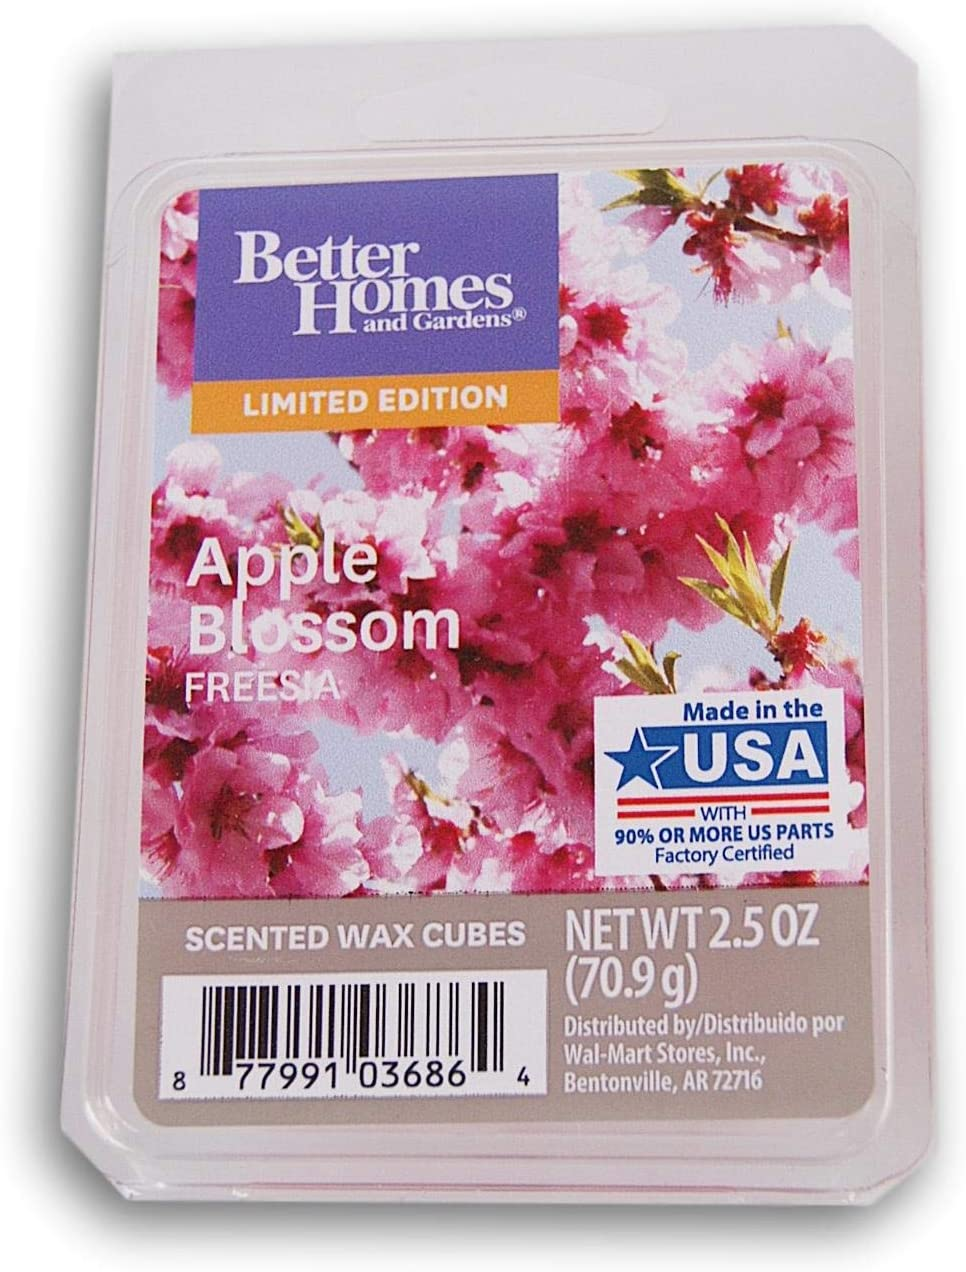 Better Homes & Gardens Apple Blossom Freesia 2019 Edition Wax Cubes